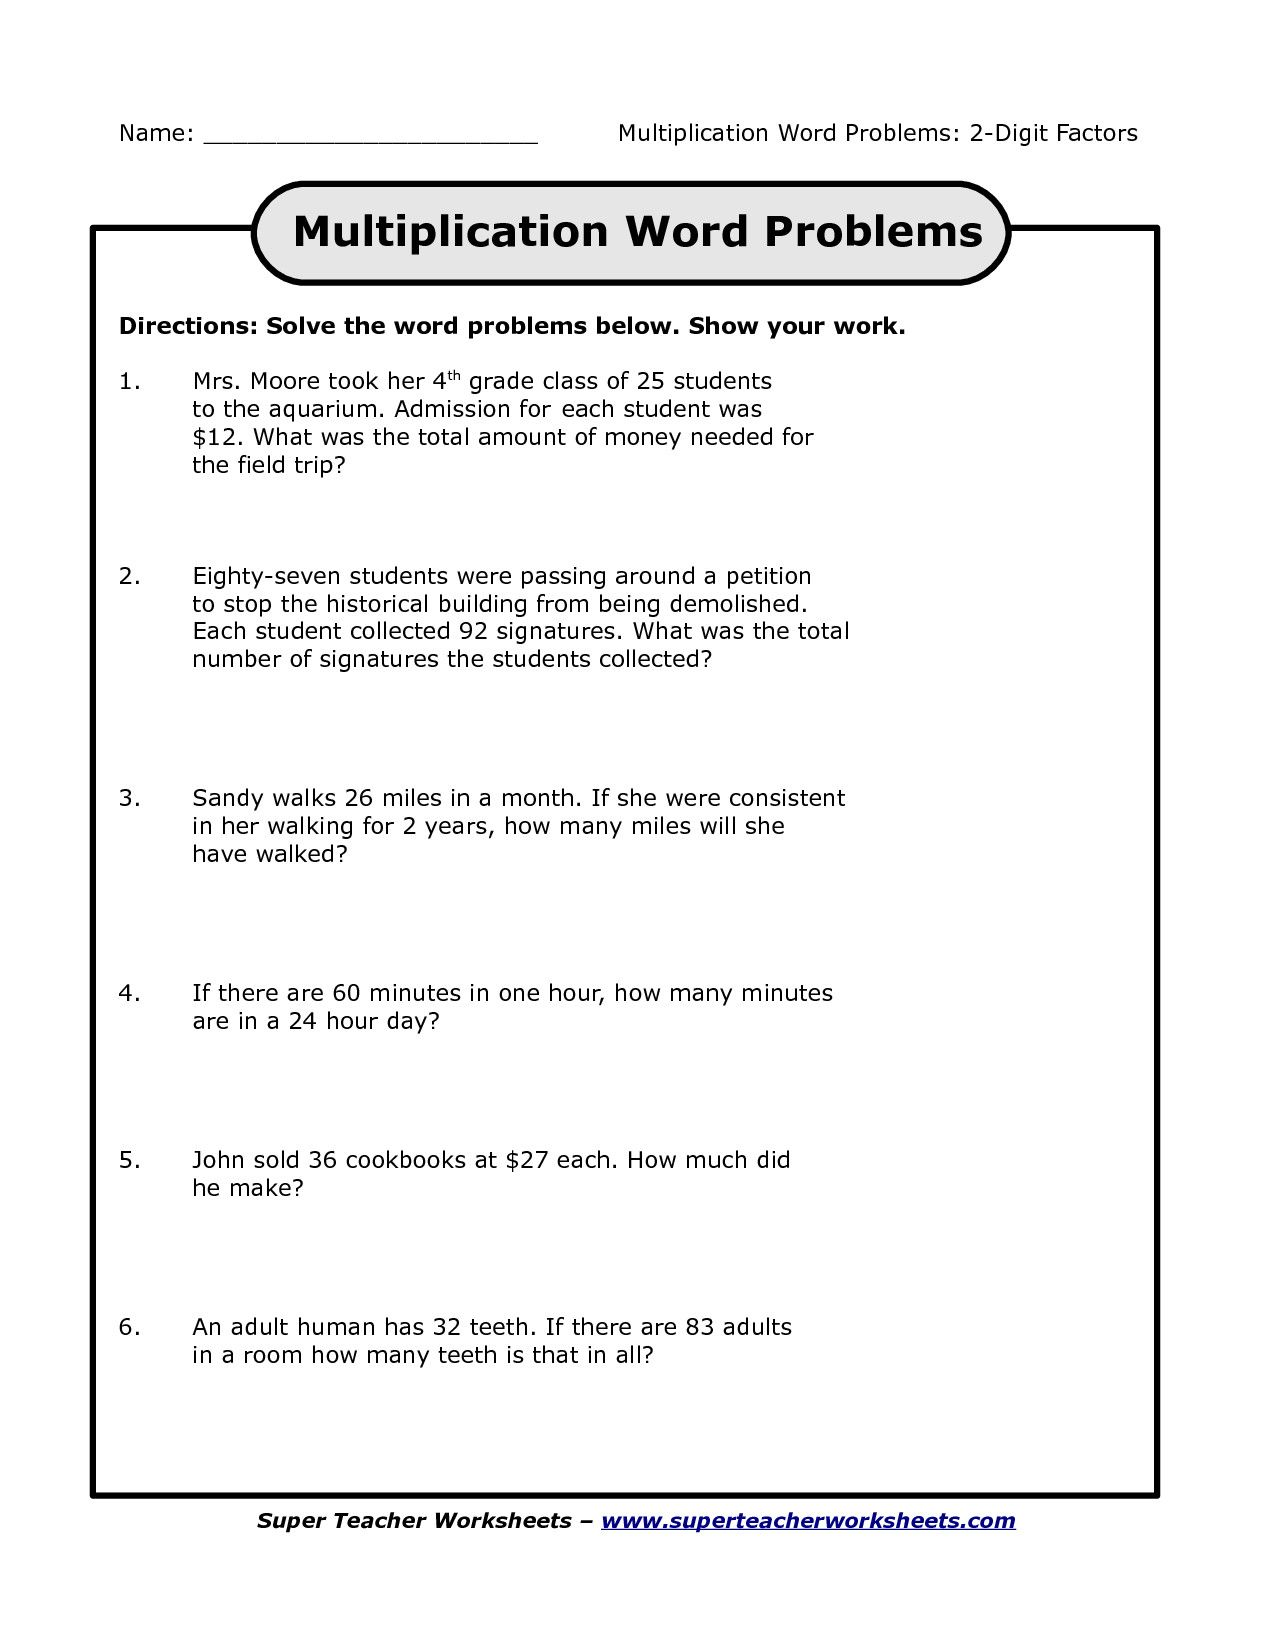 5 Free Math Worksheets First Grade 1 Counting Money Counting Money Pennies Nickels Dimes 5th Multiplication Word Problems Word Problems Math Word Problems